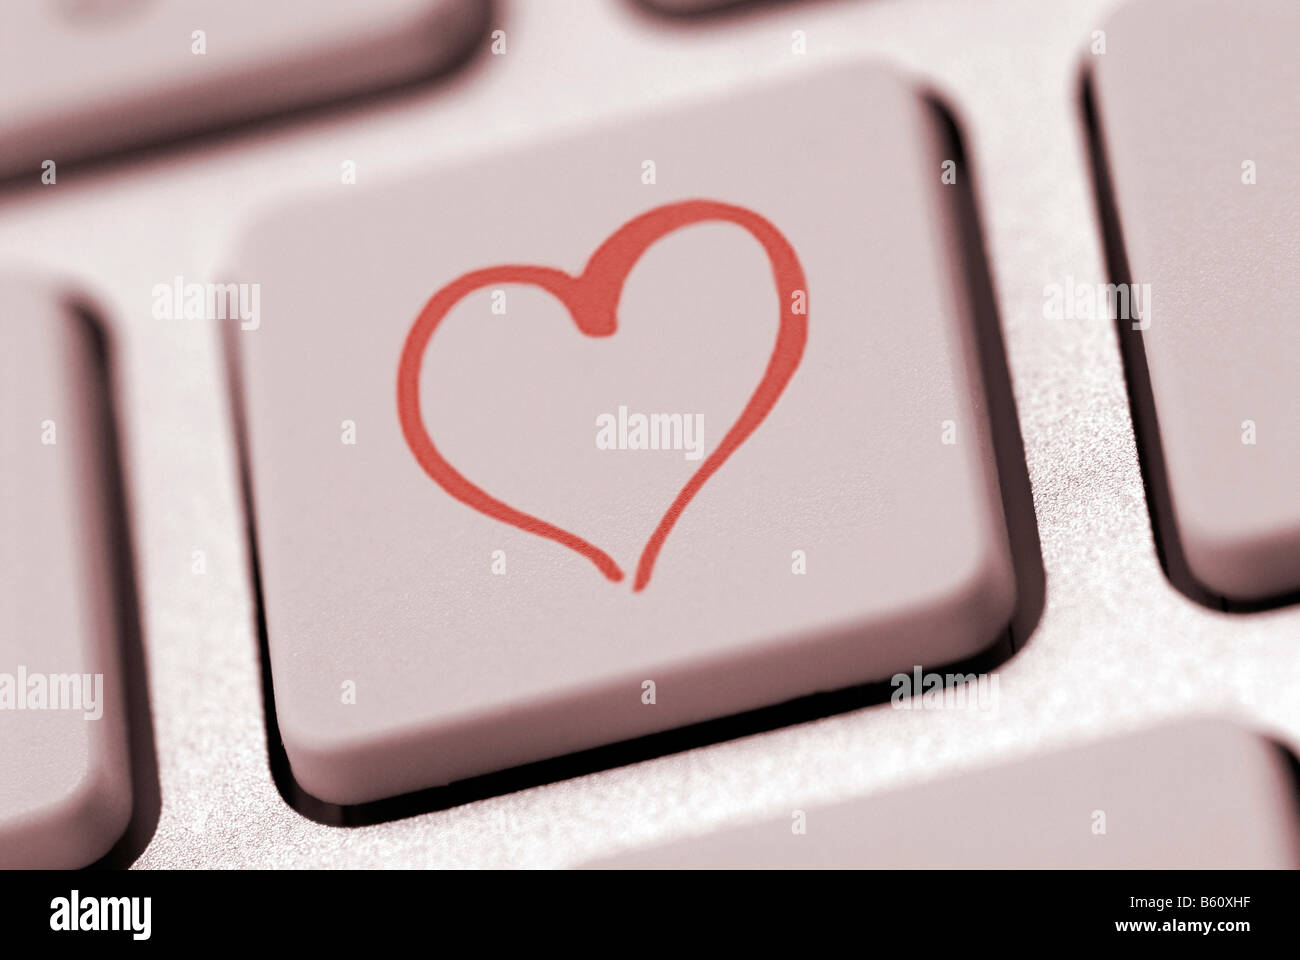 Forme de coeur sur un clavier d'ordinateur, image symbolique pour internet dating Photo Stock